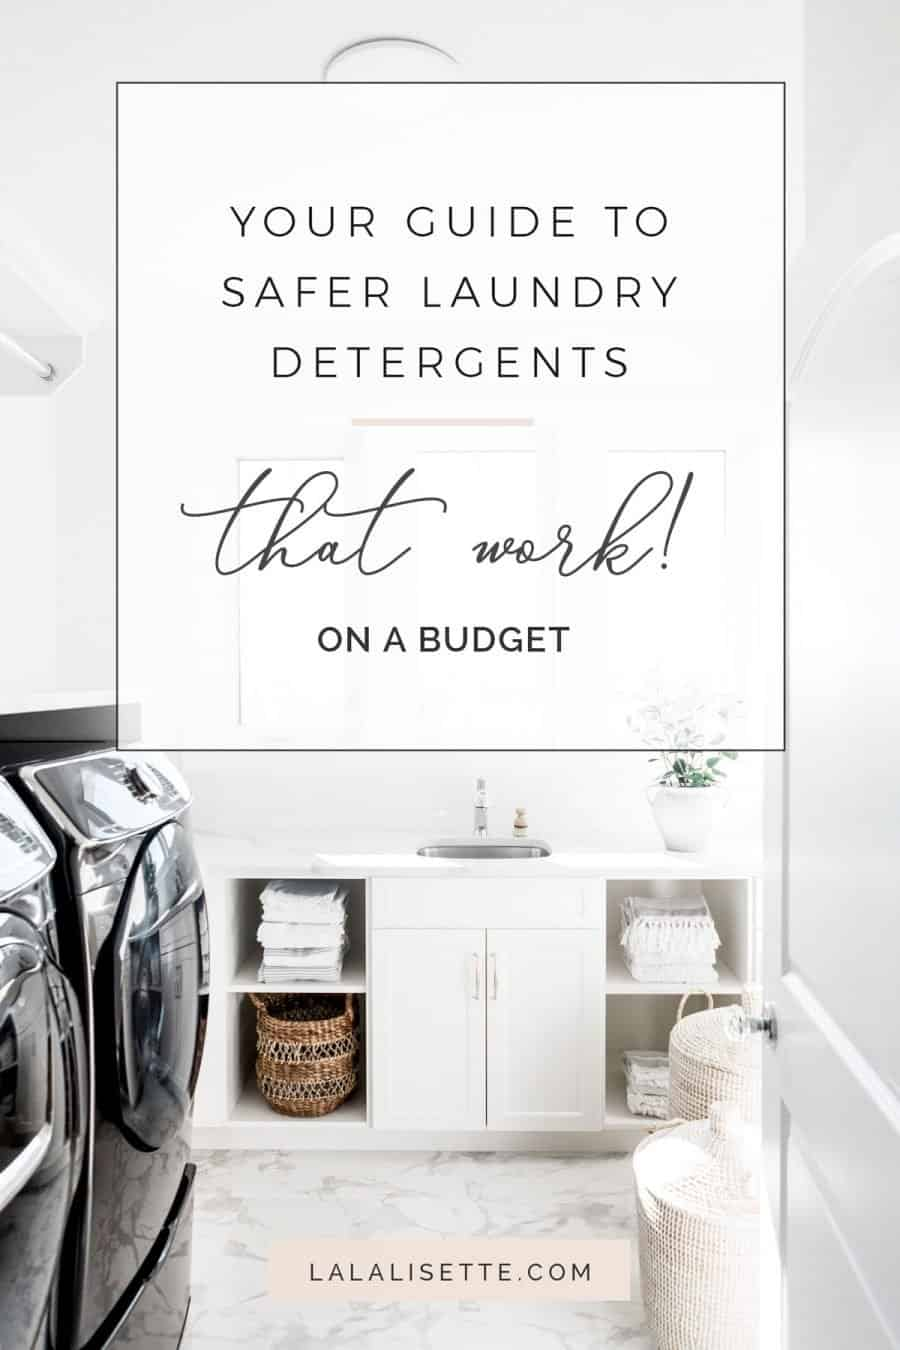 graphic of a laundry room with text: Your Guide to Safer Laundry Detergents that work! on a Budget and www.lalalisette.com